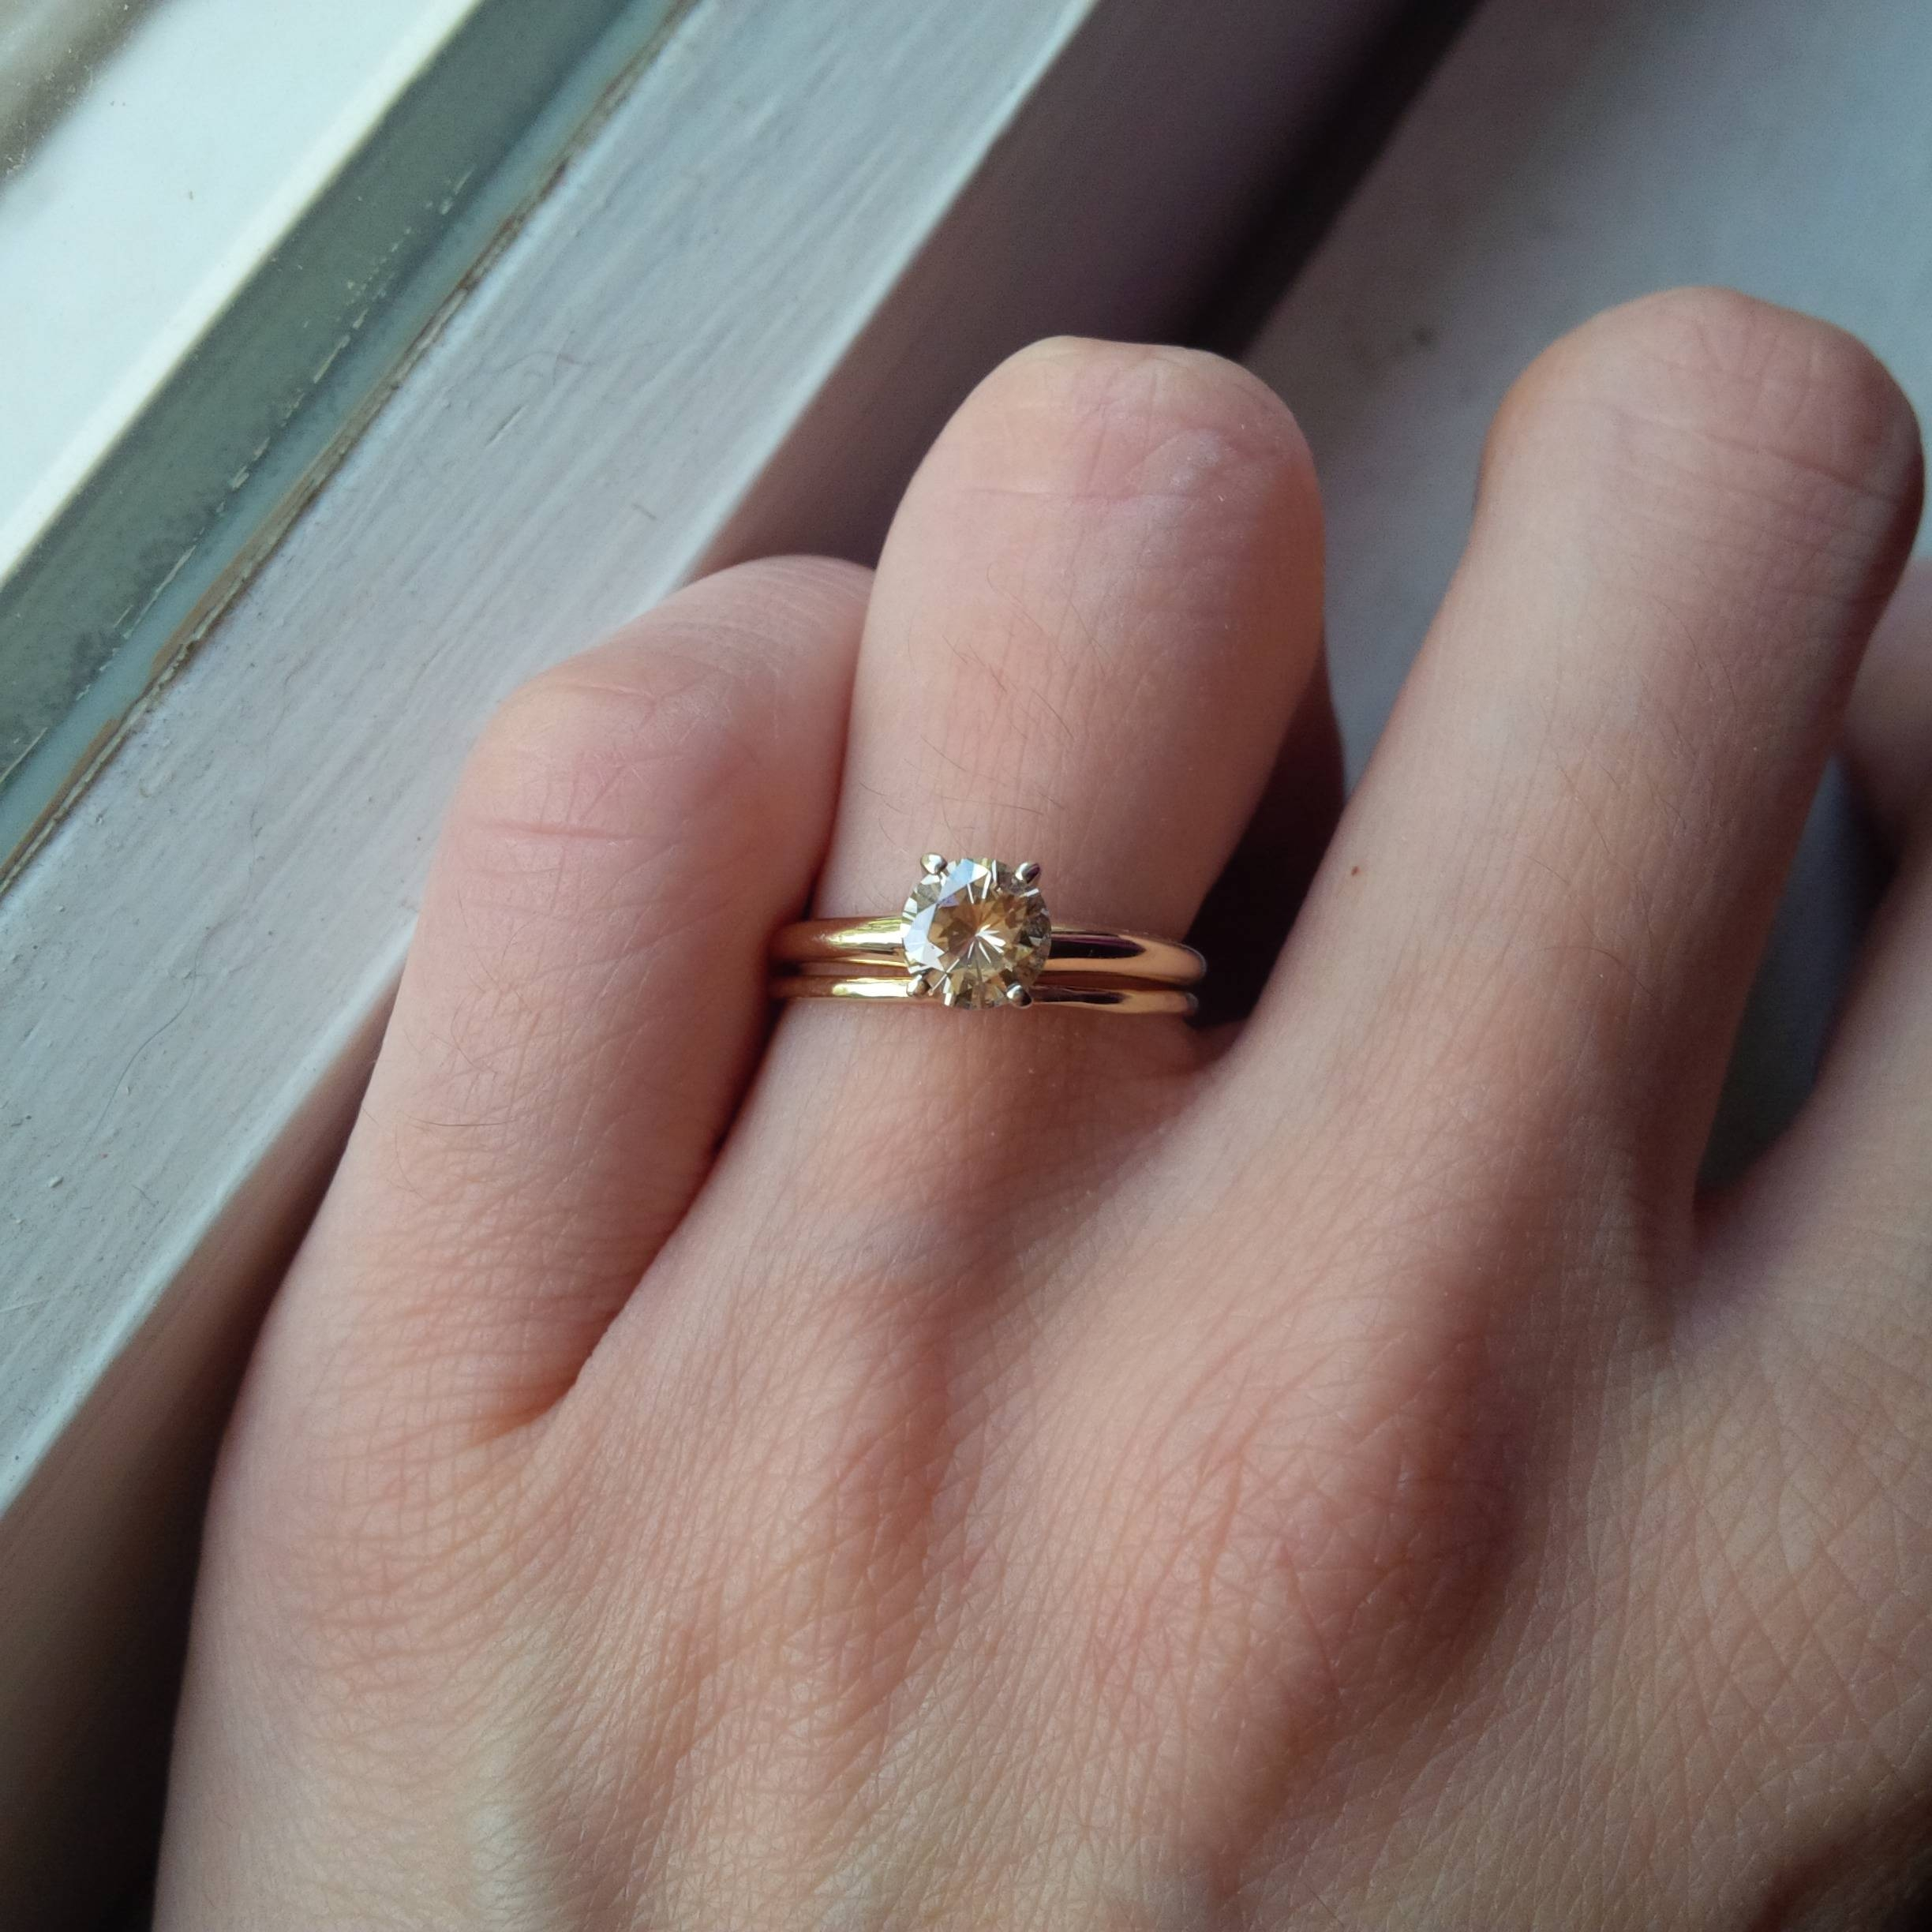 How Small Could This Engagement Ring Be Without Throwing Off The With Small Size Engagement Rings (View 9 of 15)